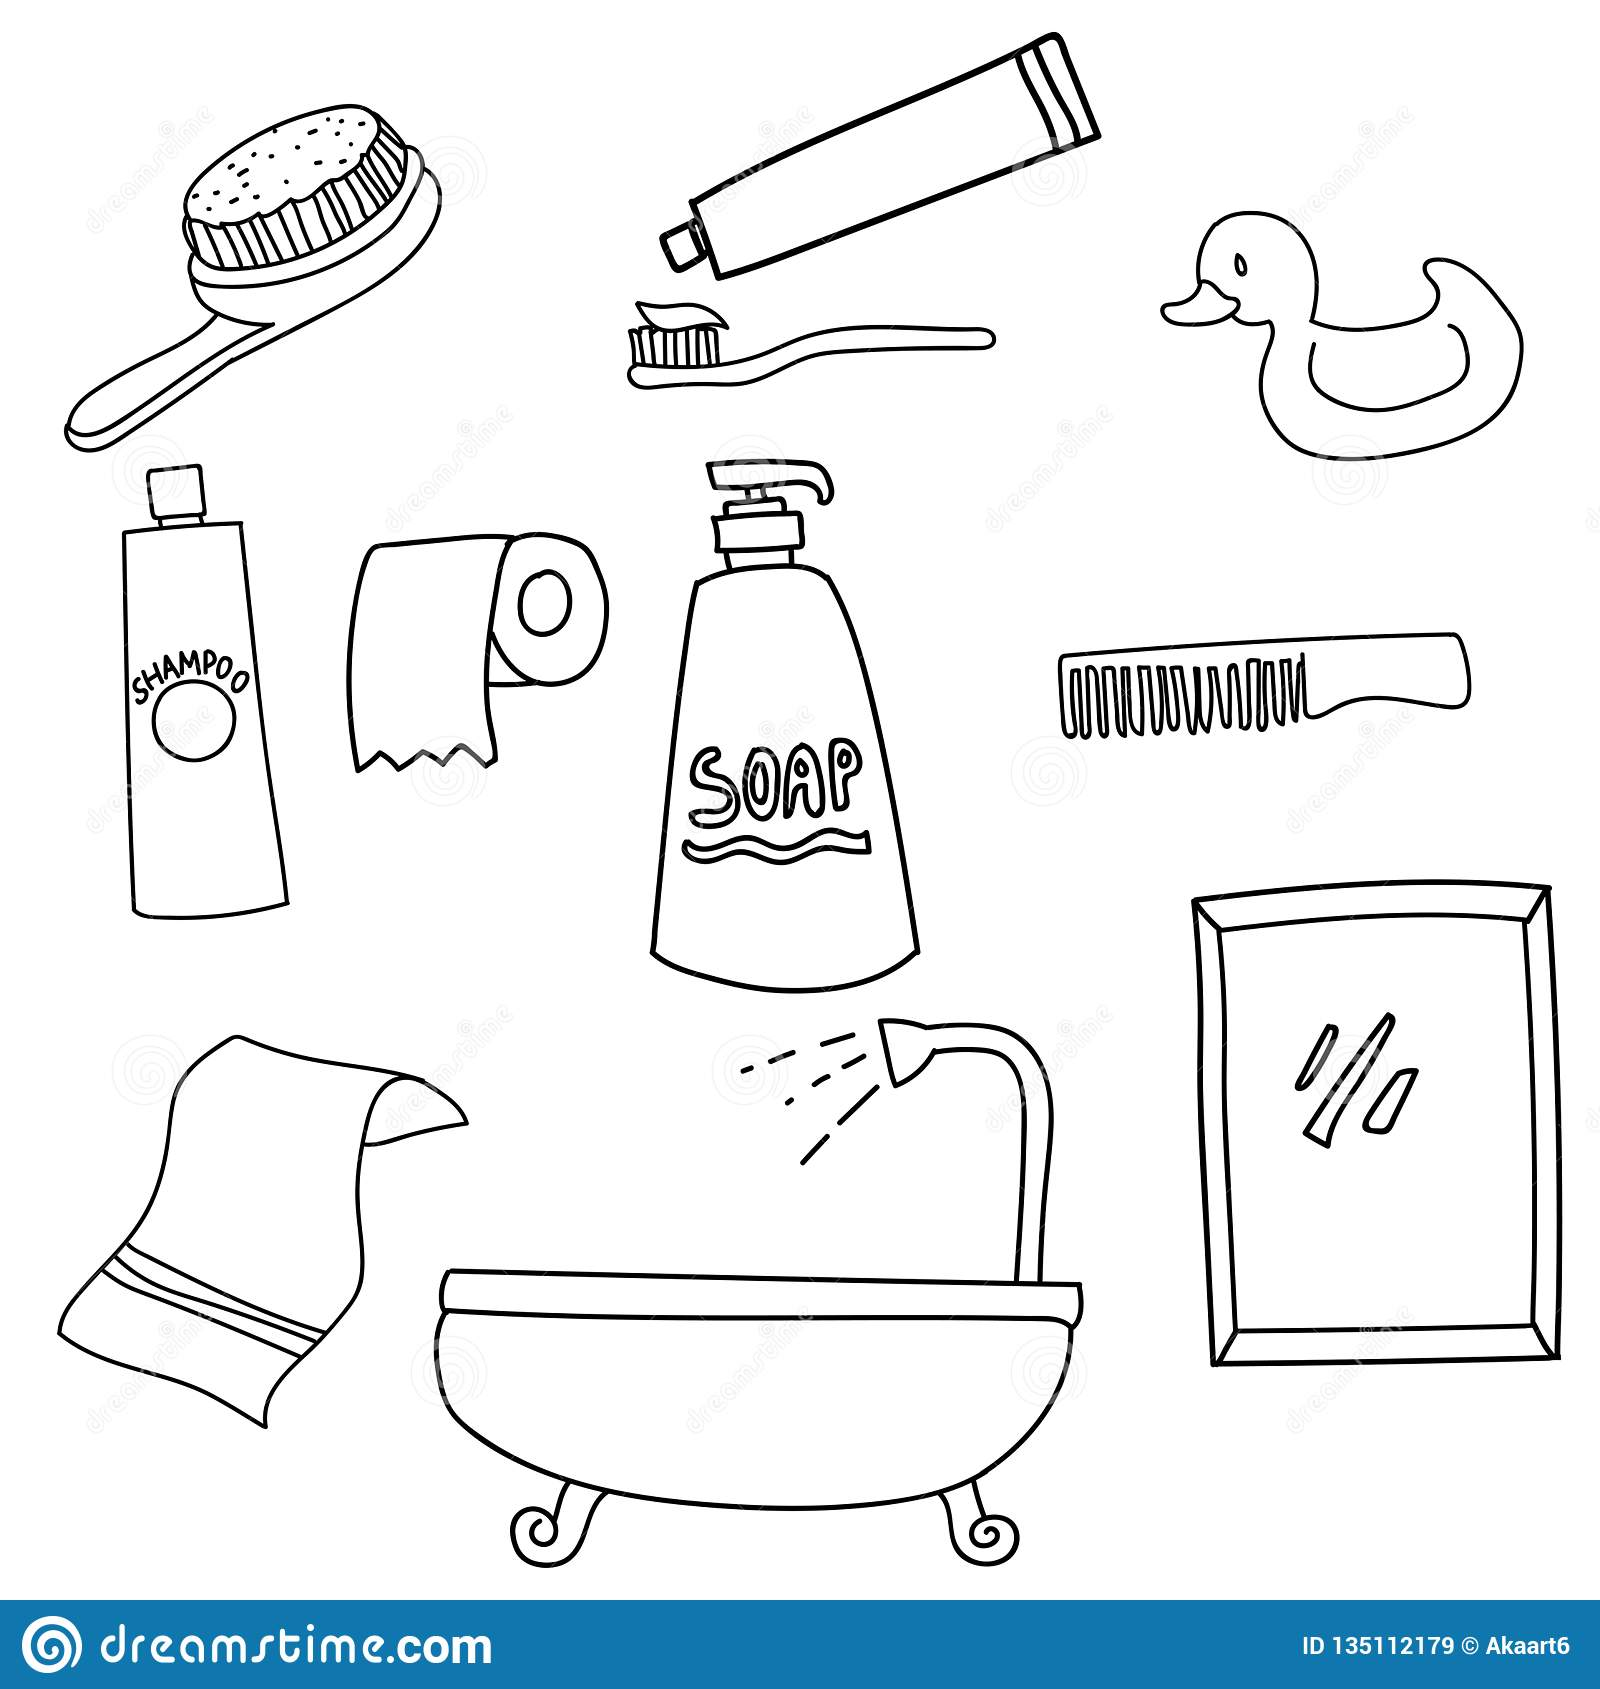 Set Of Bathroom Tools Line Art Icon Symbols Stock Vector Illustration Of Symbol Tool 135112179